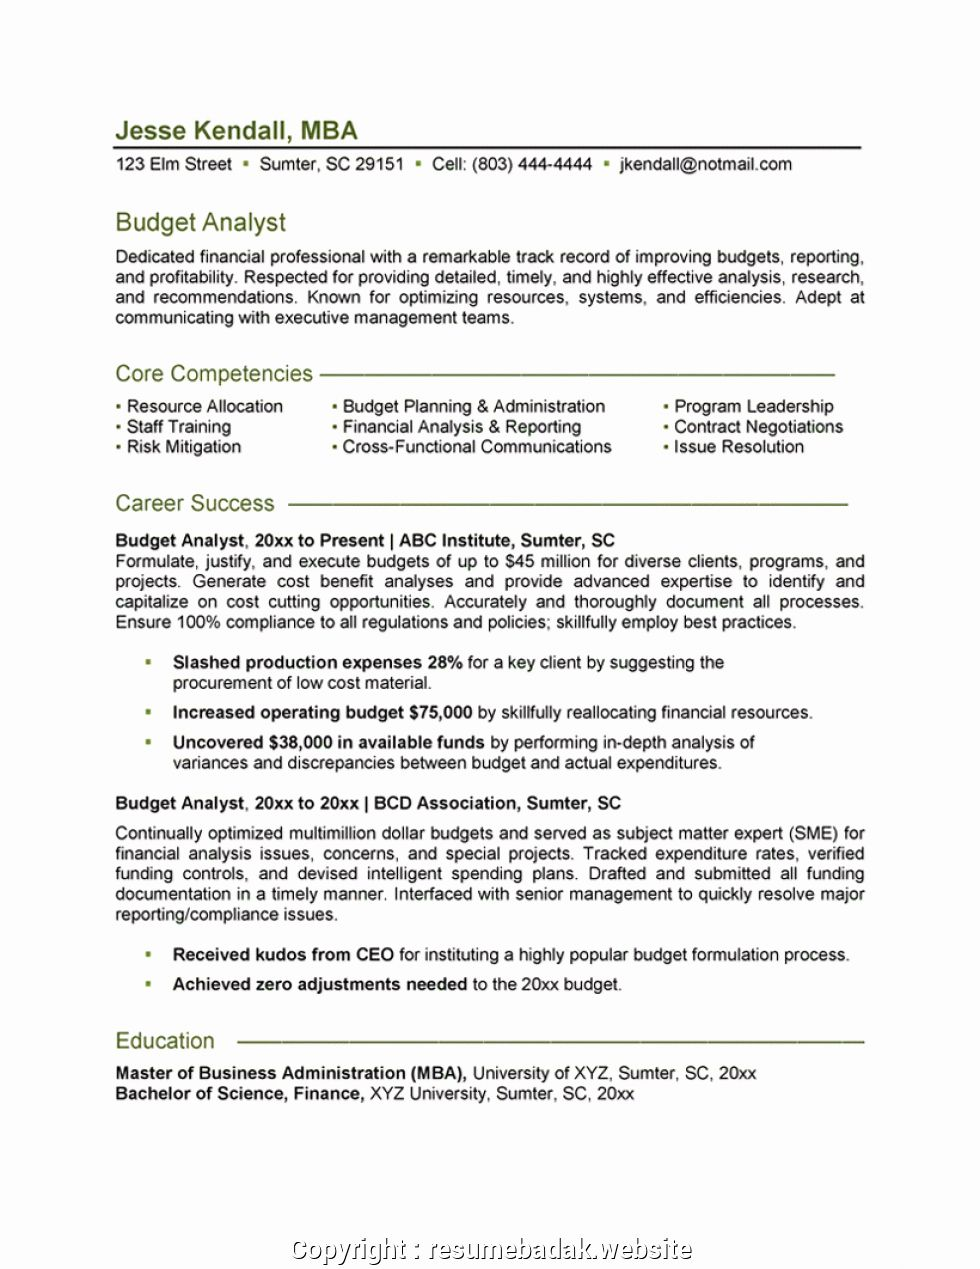 Entry Level Project Coordinator Resume Lovely Simple It Manager Bud Resume Entry Level Project Resume Examples Sample Resume Job Resume Samples